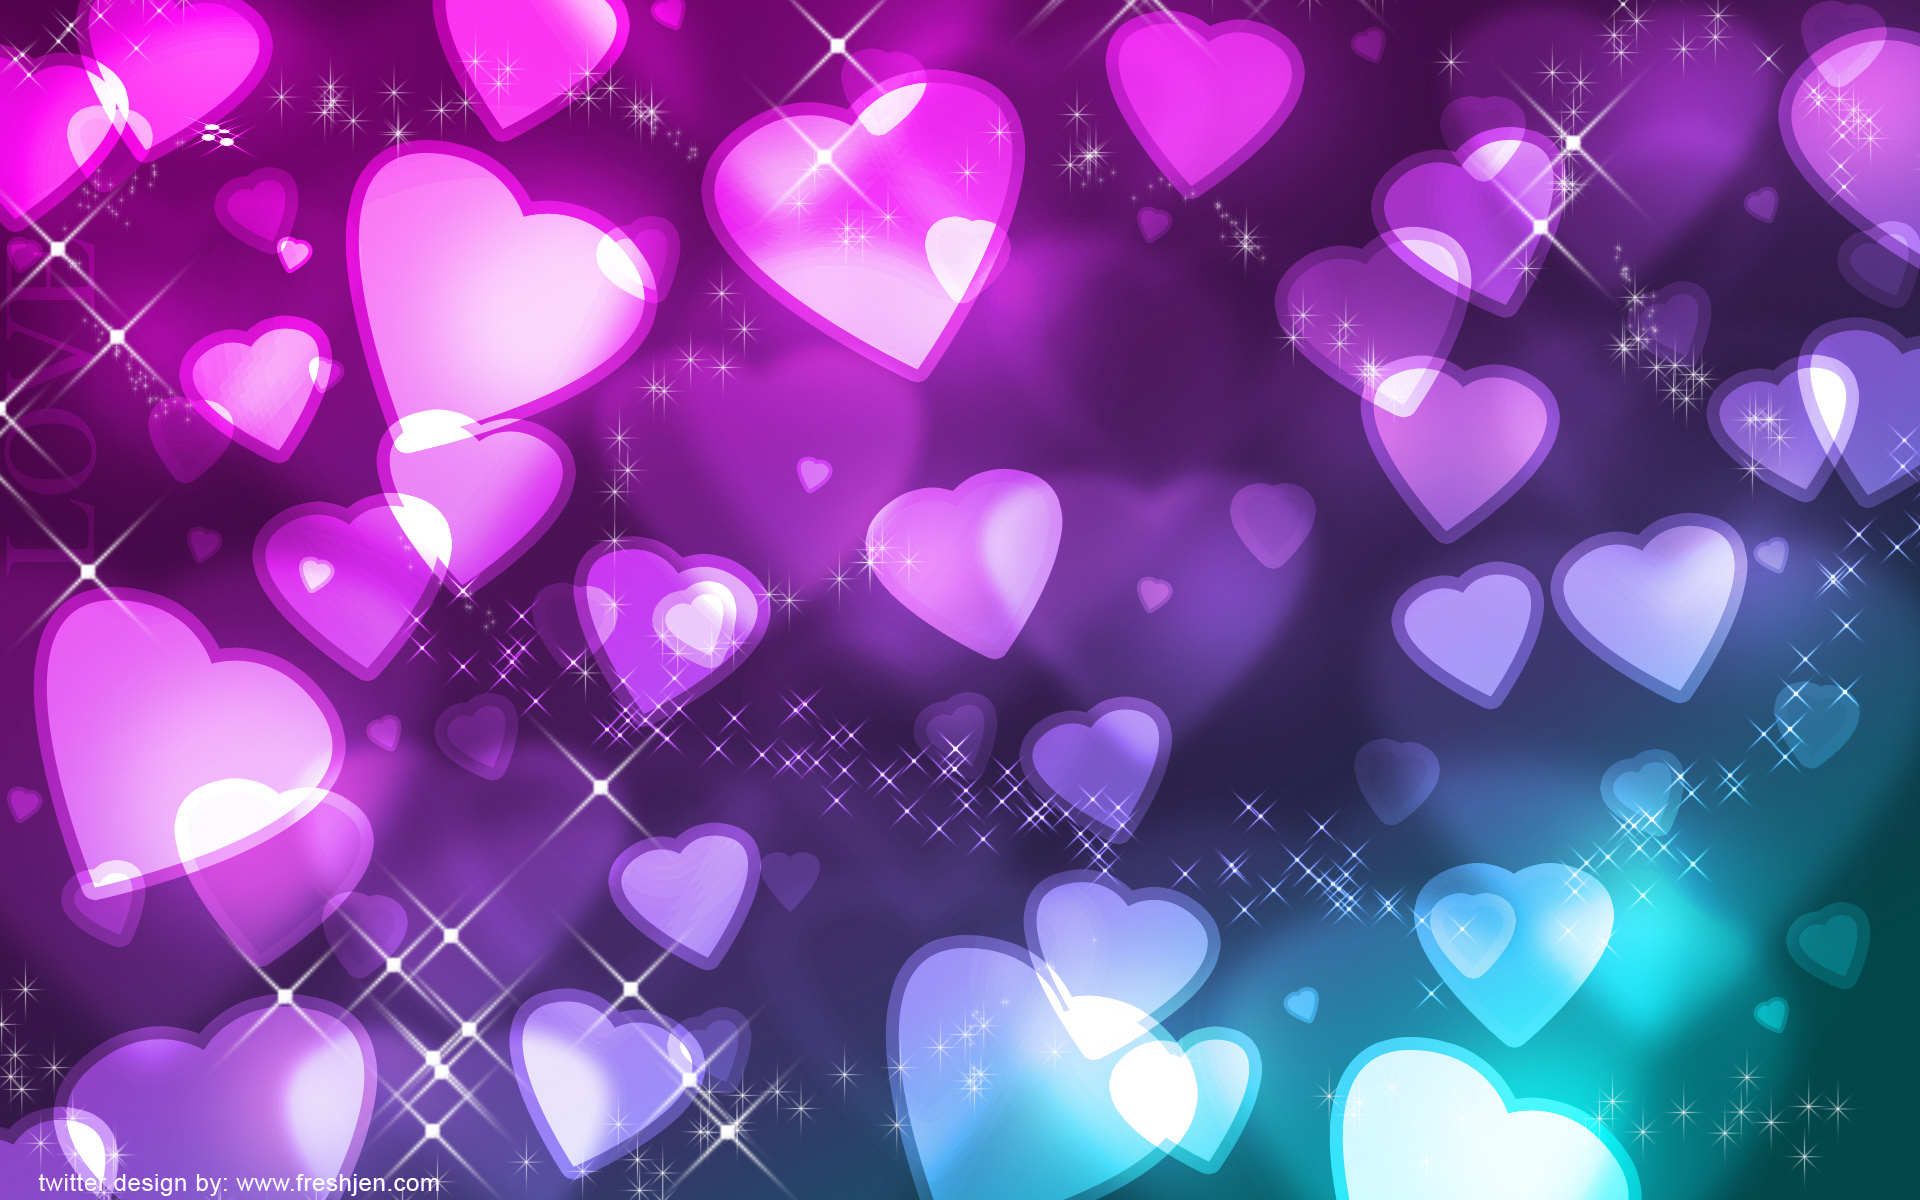 Wallpaper cute Purple Love : Religious Wallpapers Free Downloads-*Radical Pagan Philosopher*: Website Background Textures ...